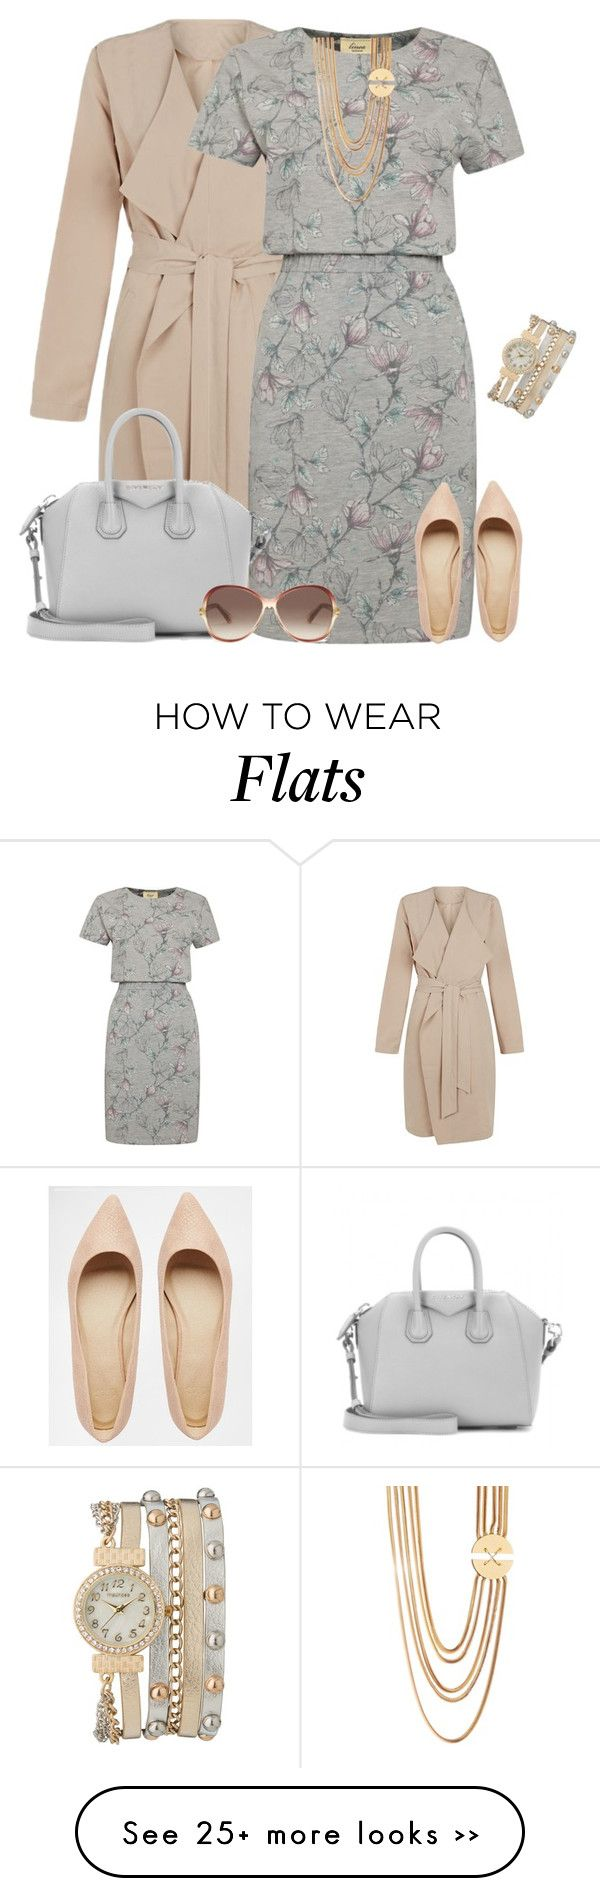 """outfit 2279"" by natalyag on Polyvore featuring Linea Weekend, ASOS, Rachel Zoe, Givenchy, maurices and Marc Jacobs"